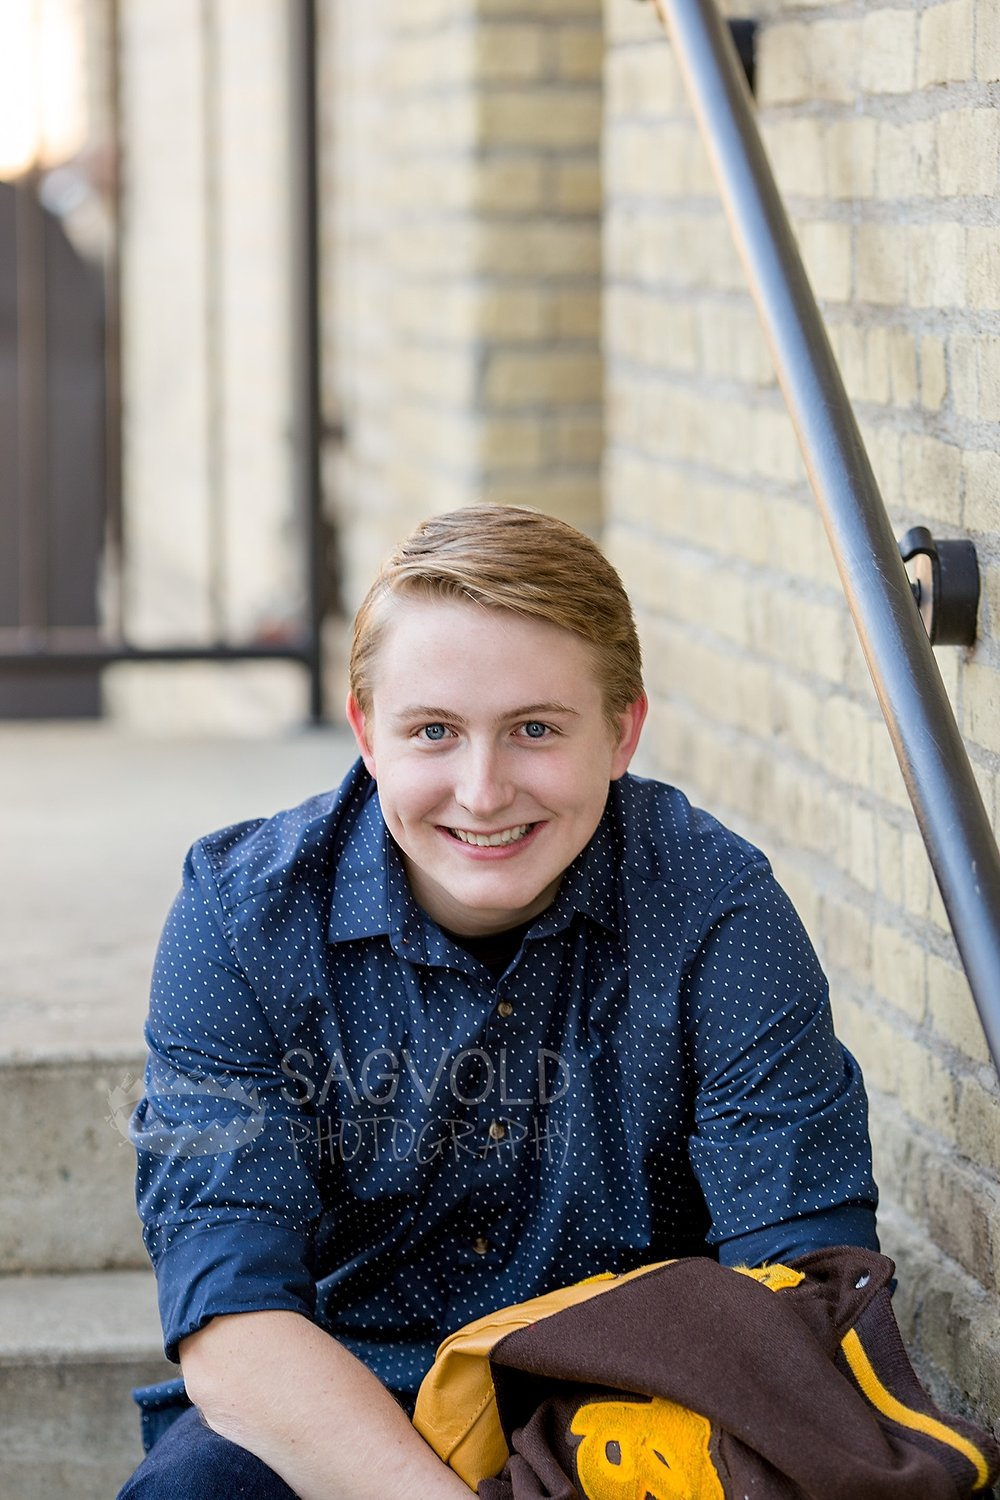 Senior picture Fargo ND senior photographer Janna Sagvold Photography